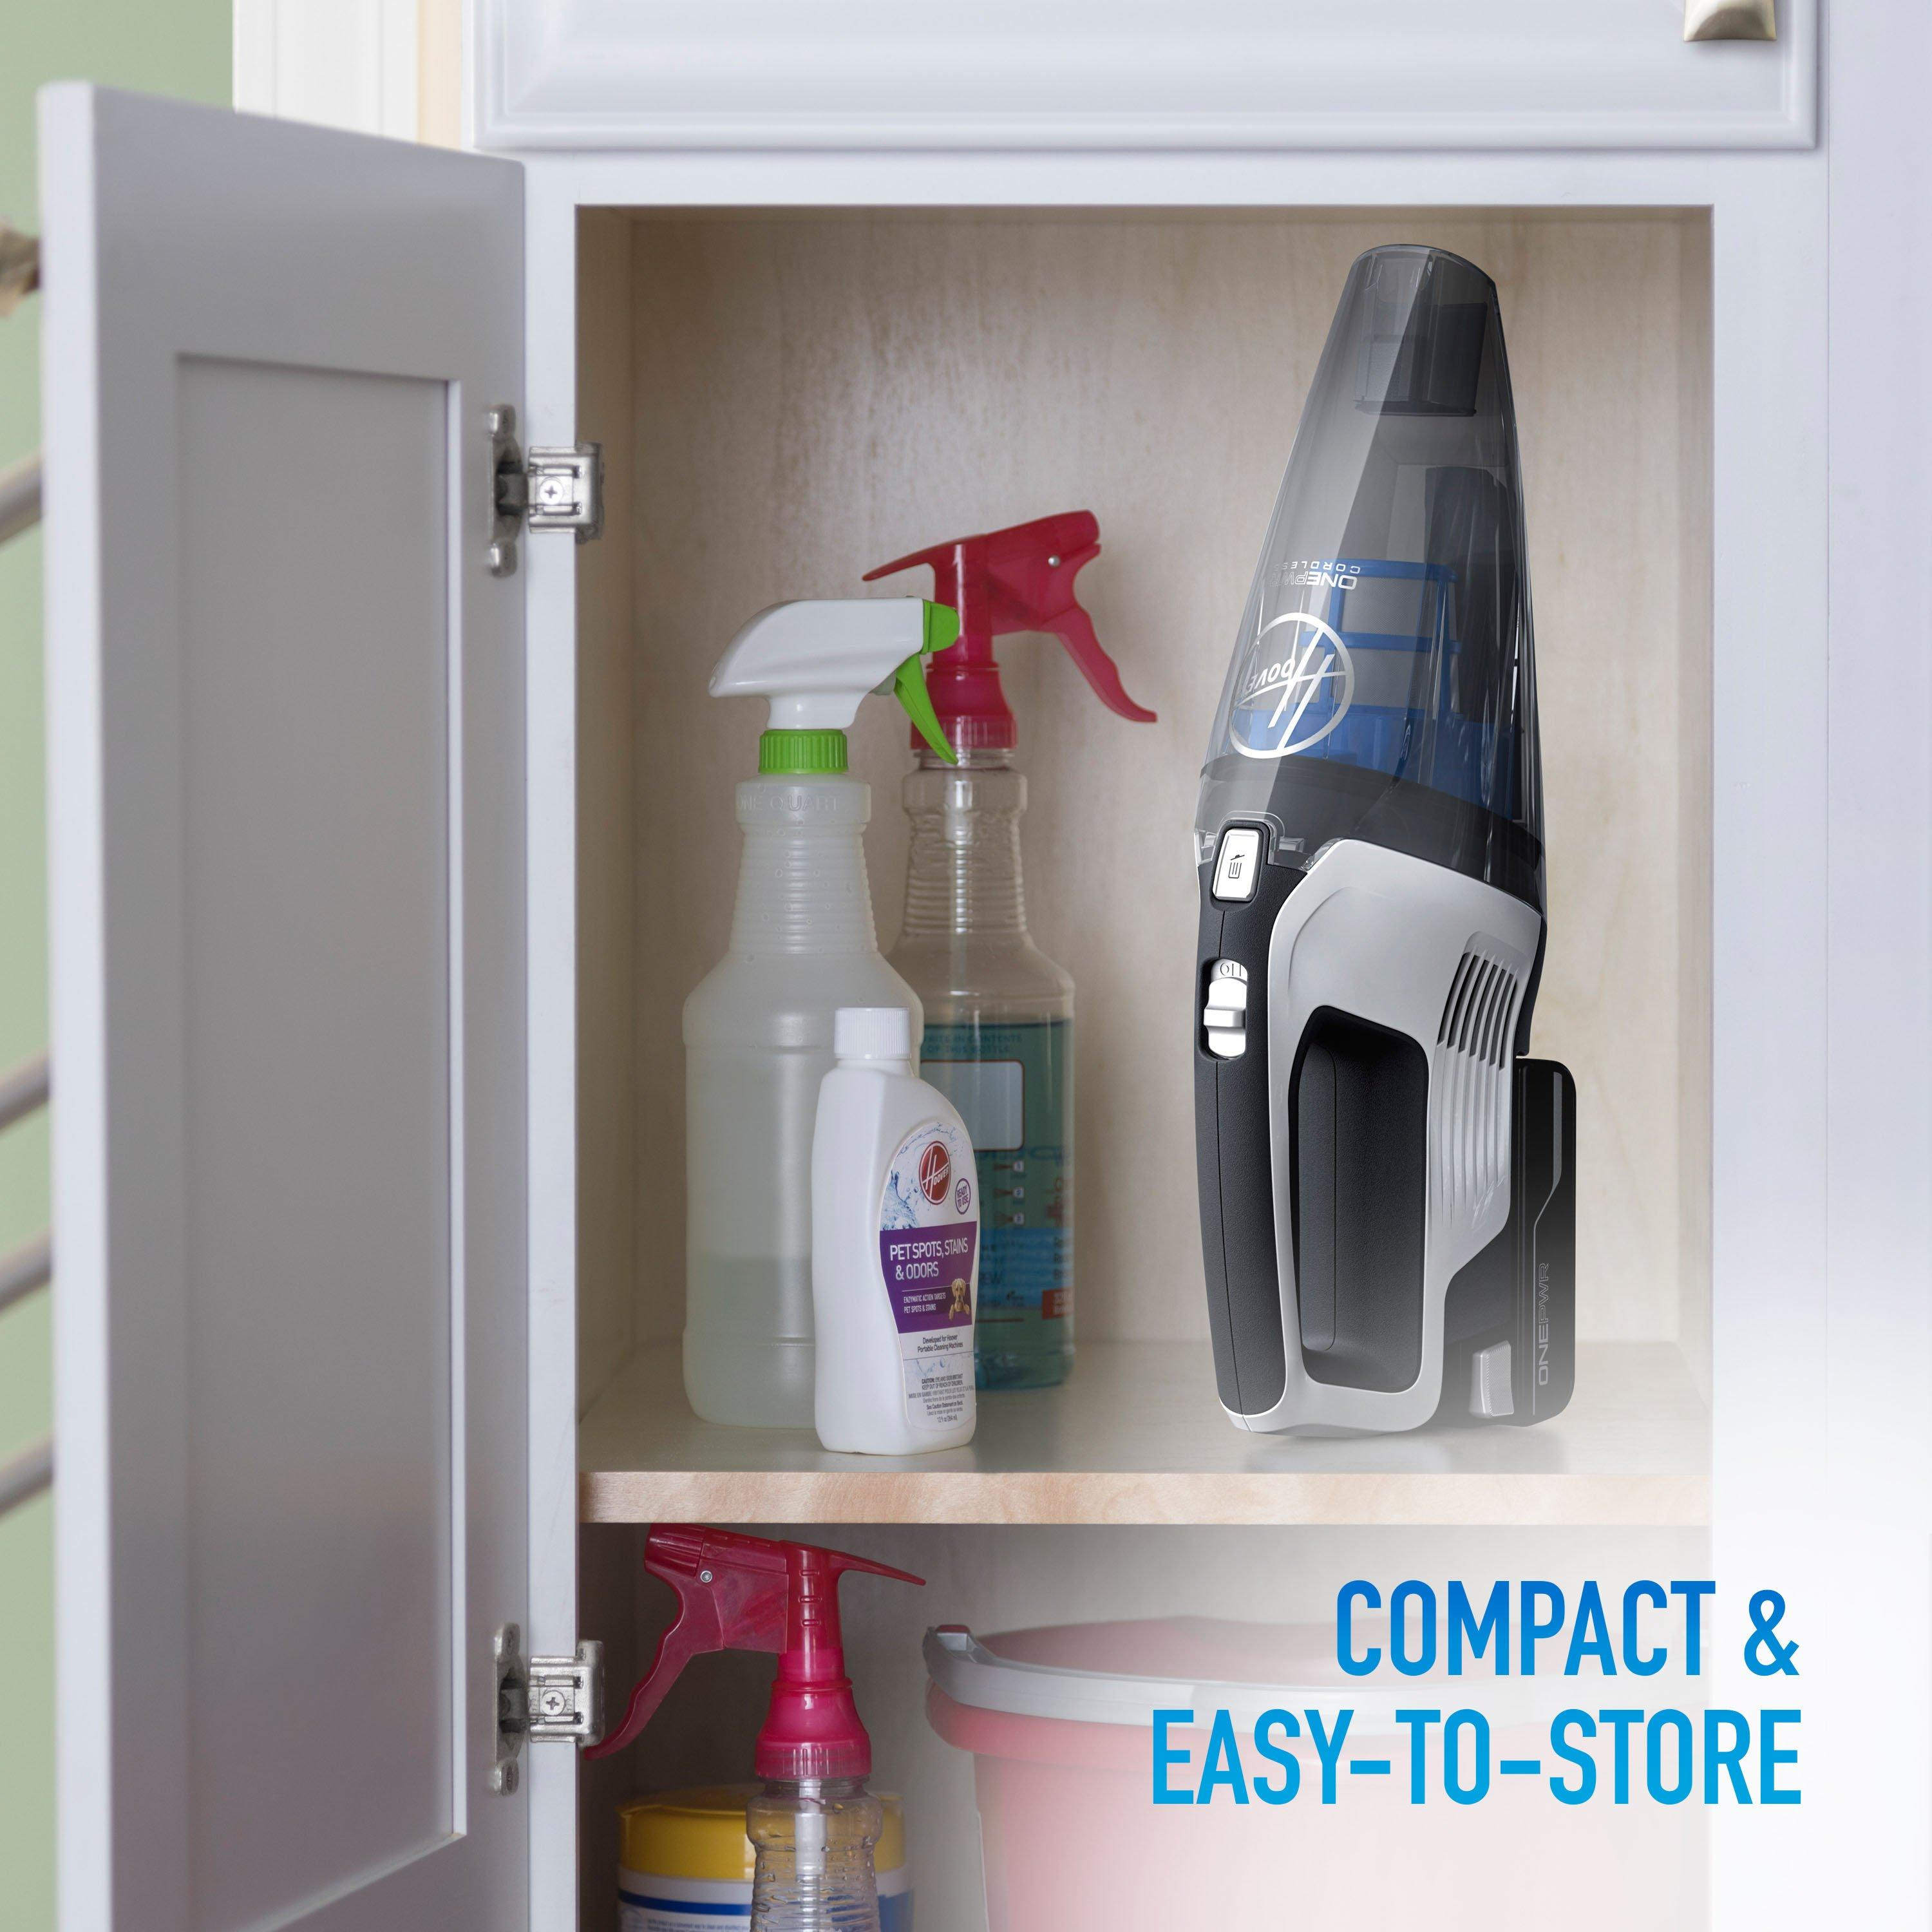 ONEPWR Cordless Hand Vacuum - Tool Only5